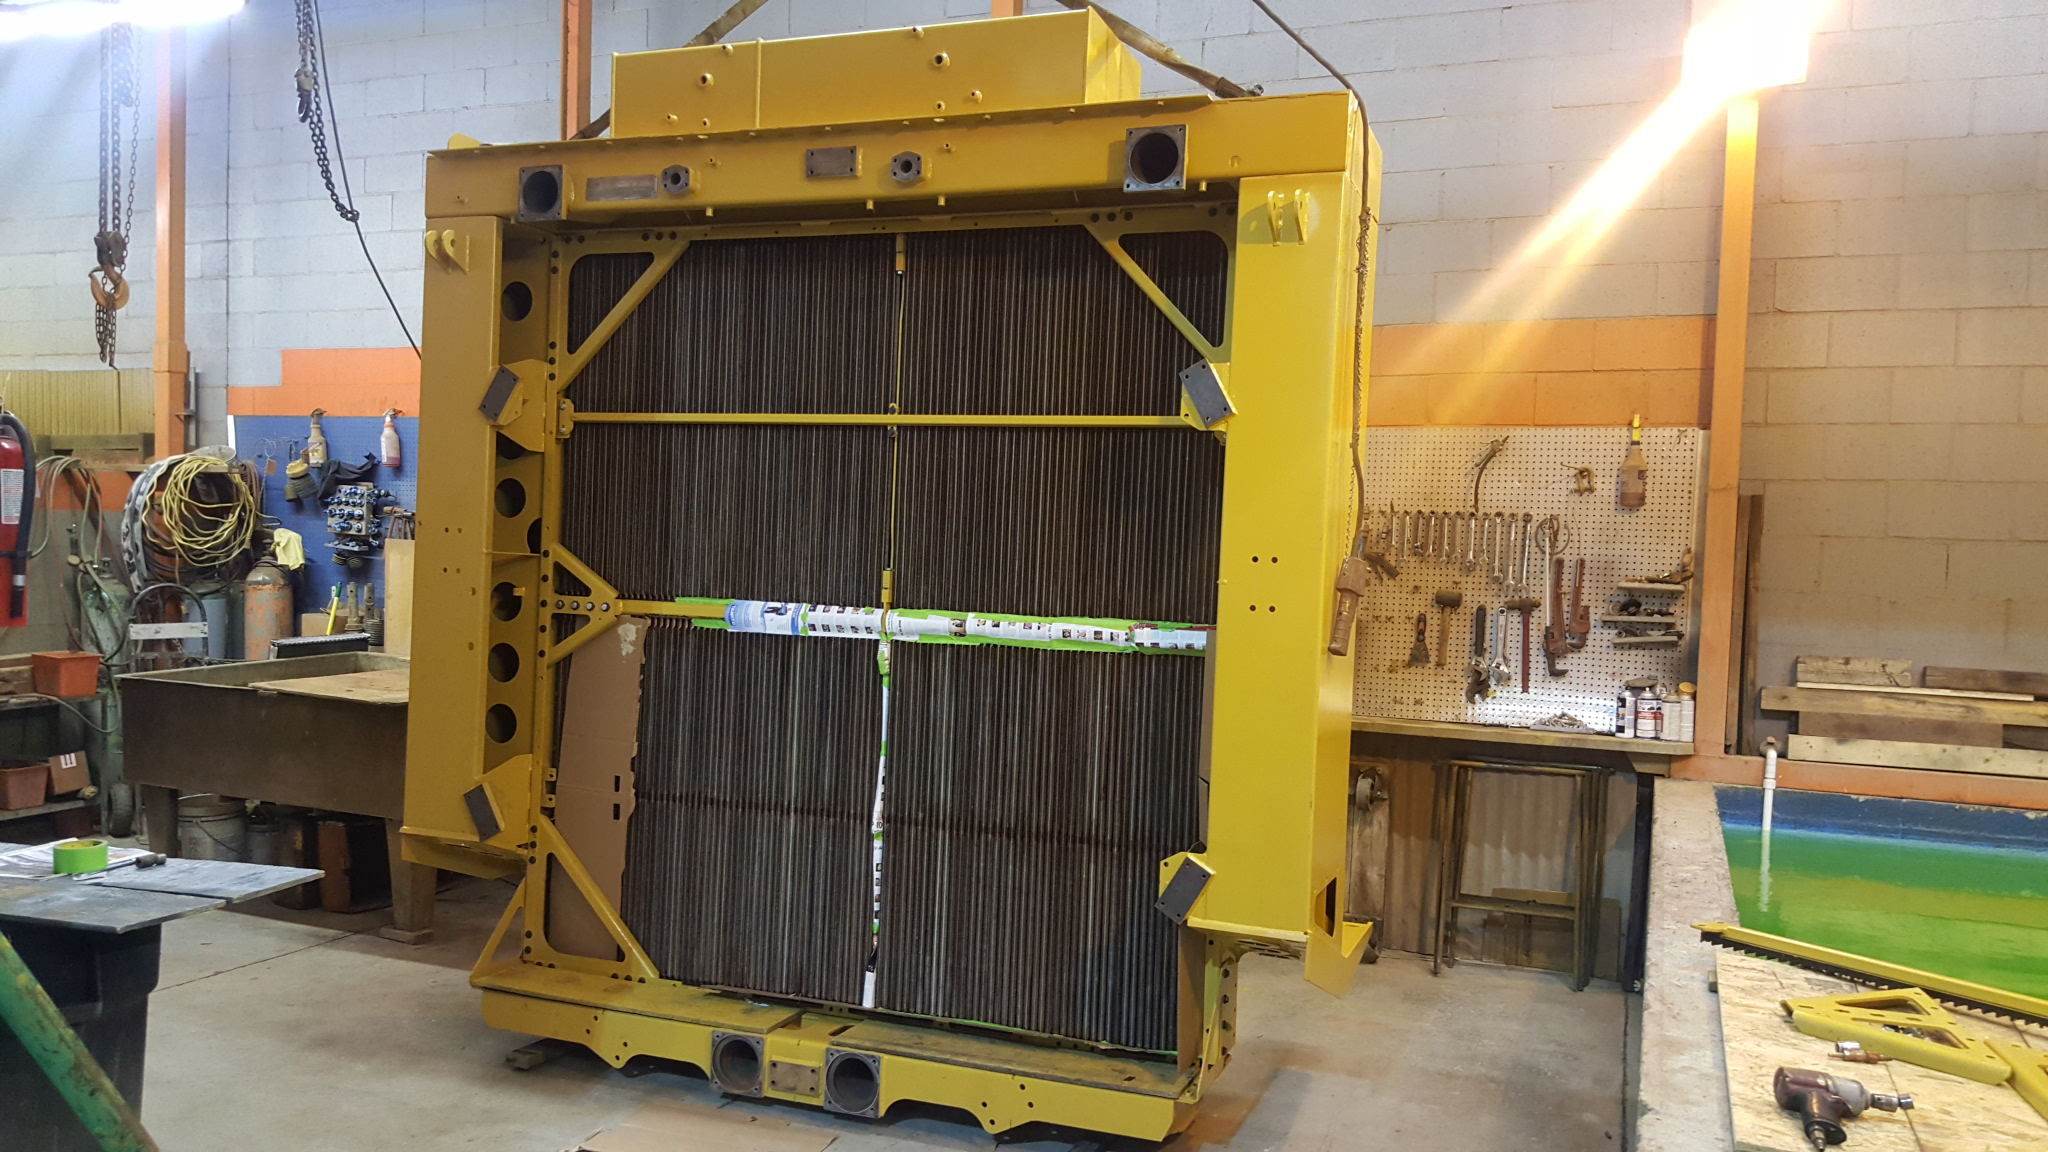 Caterpillar 793 Haul Truck Mesabi Spare Radiator Overhaul